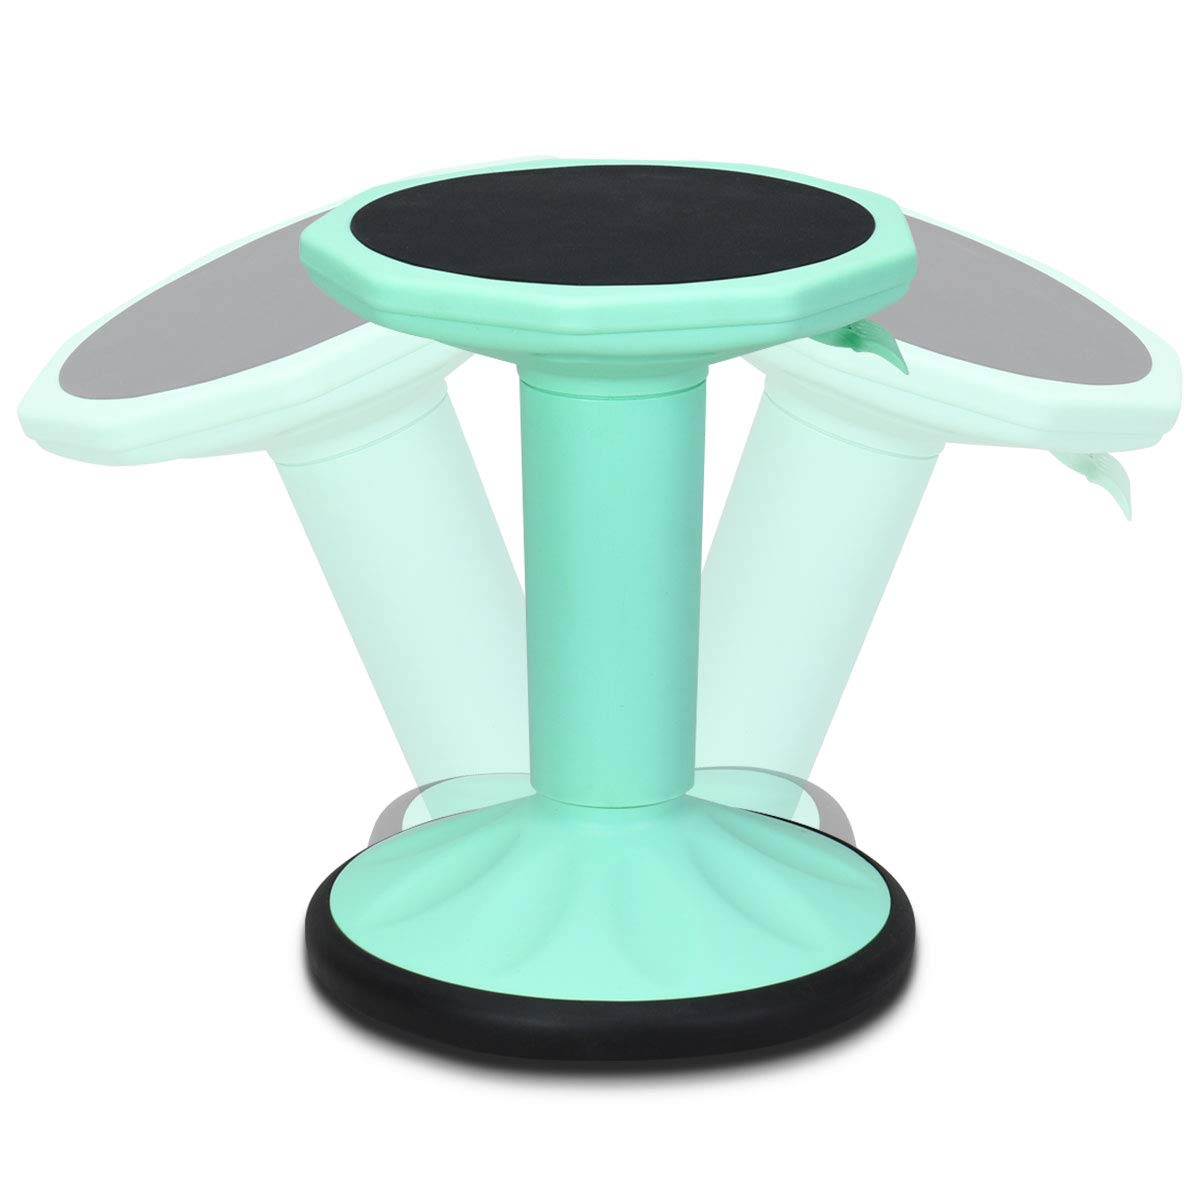 Giantex Wobble Chair Adjustable-Height Active Learning Stool Sitting Balance Chair for Office Stand Up Desk (Green) by Giantex